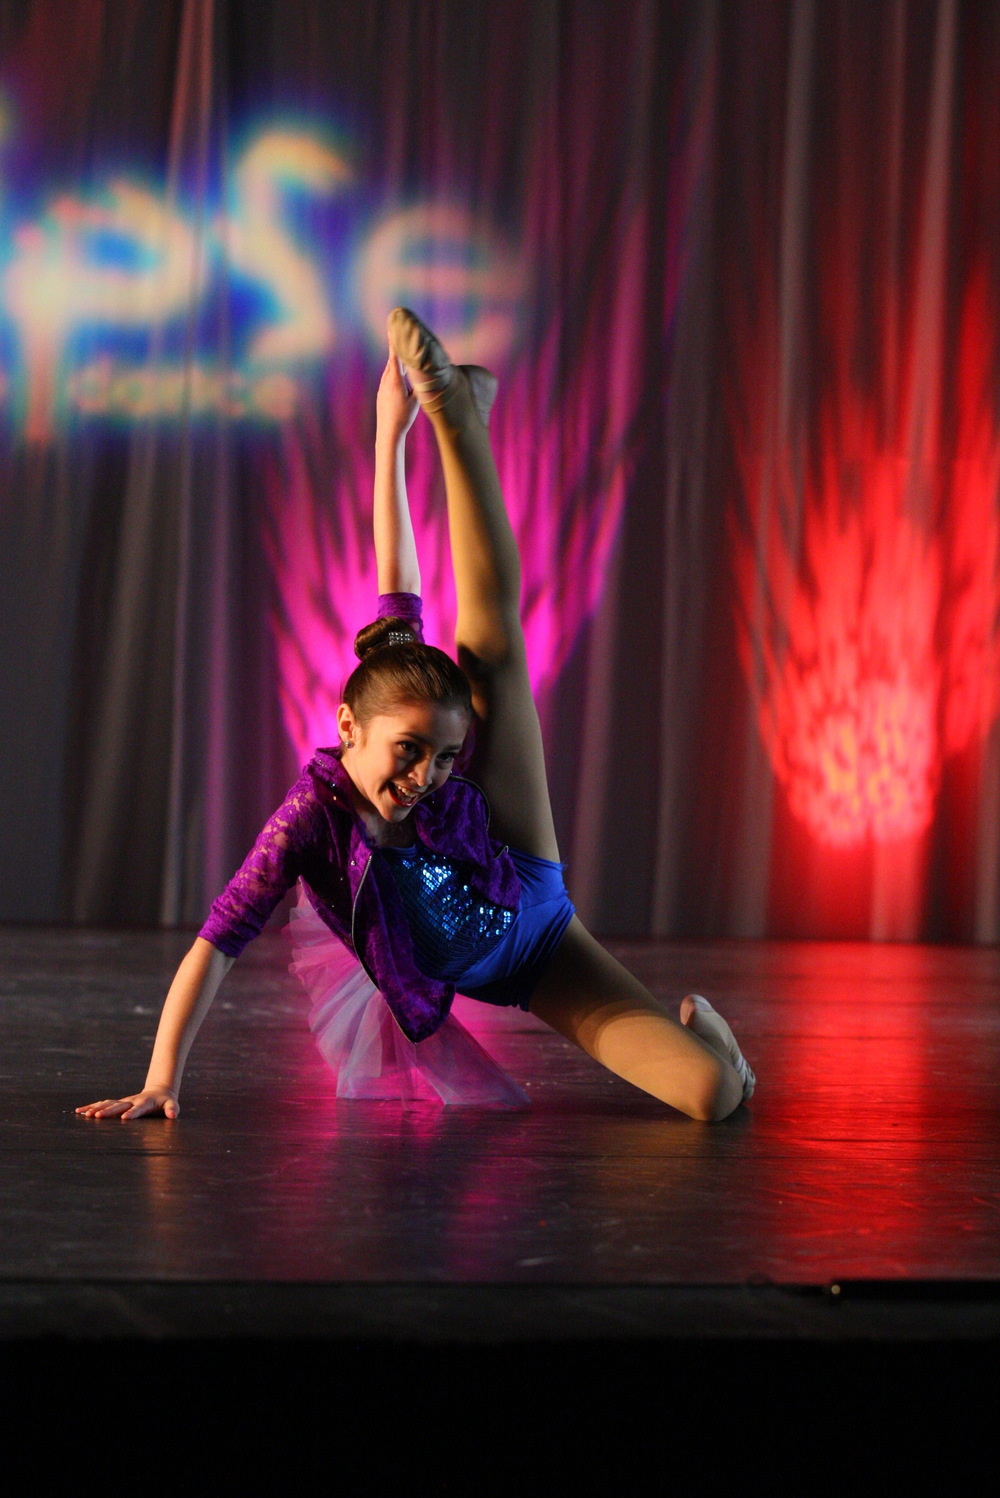 2013 - Nicole Miller from Chanhassen Dance Connection